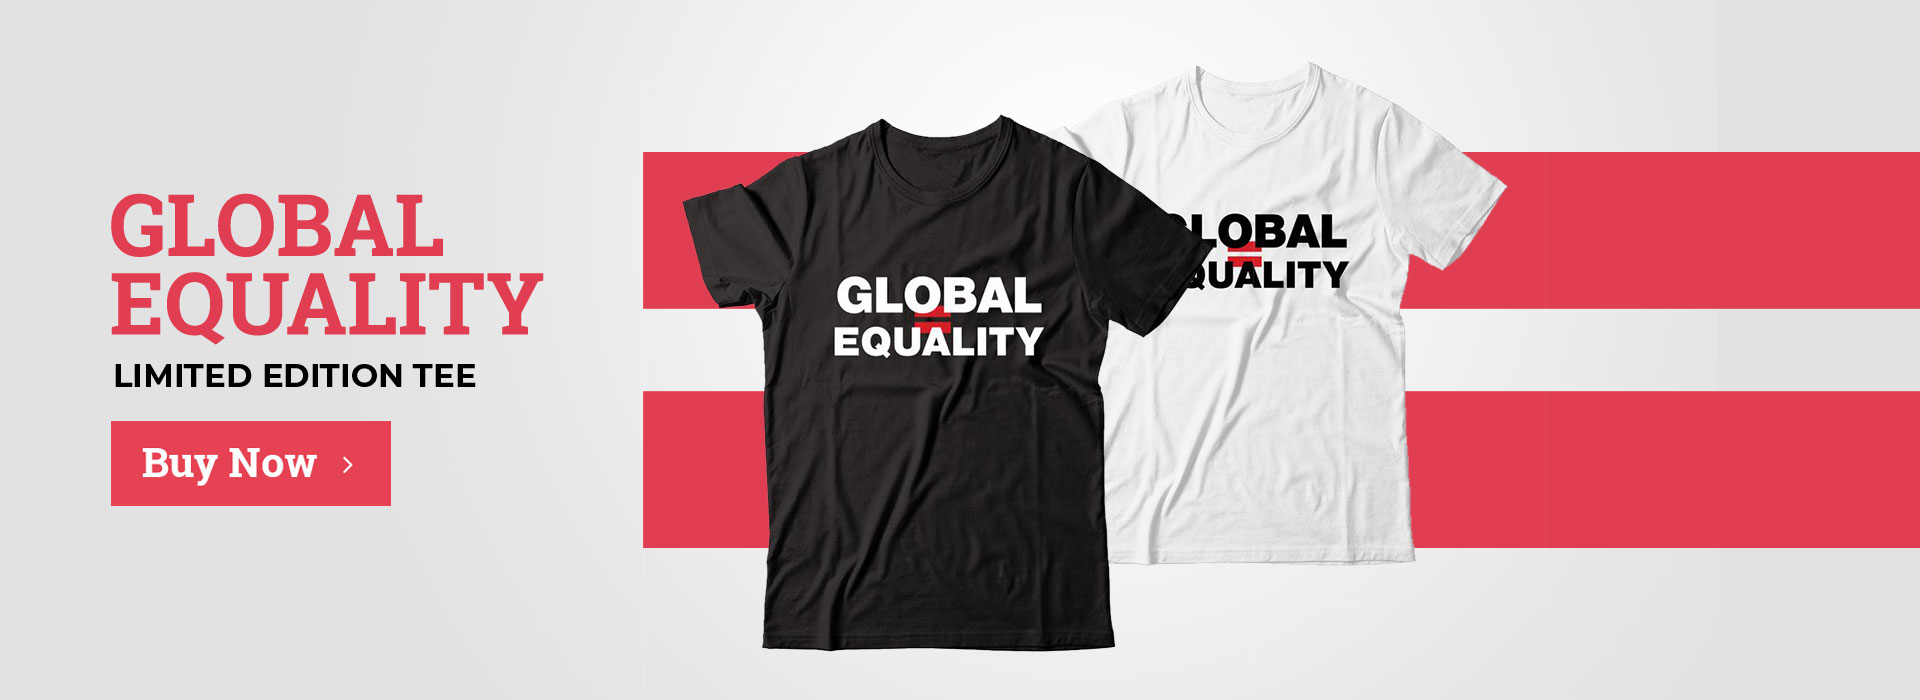 Global Equality Limited Edition Tee